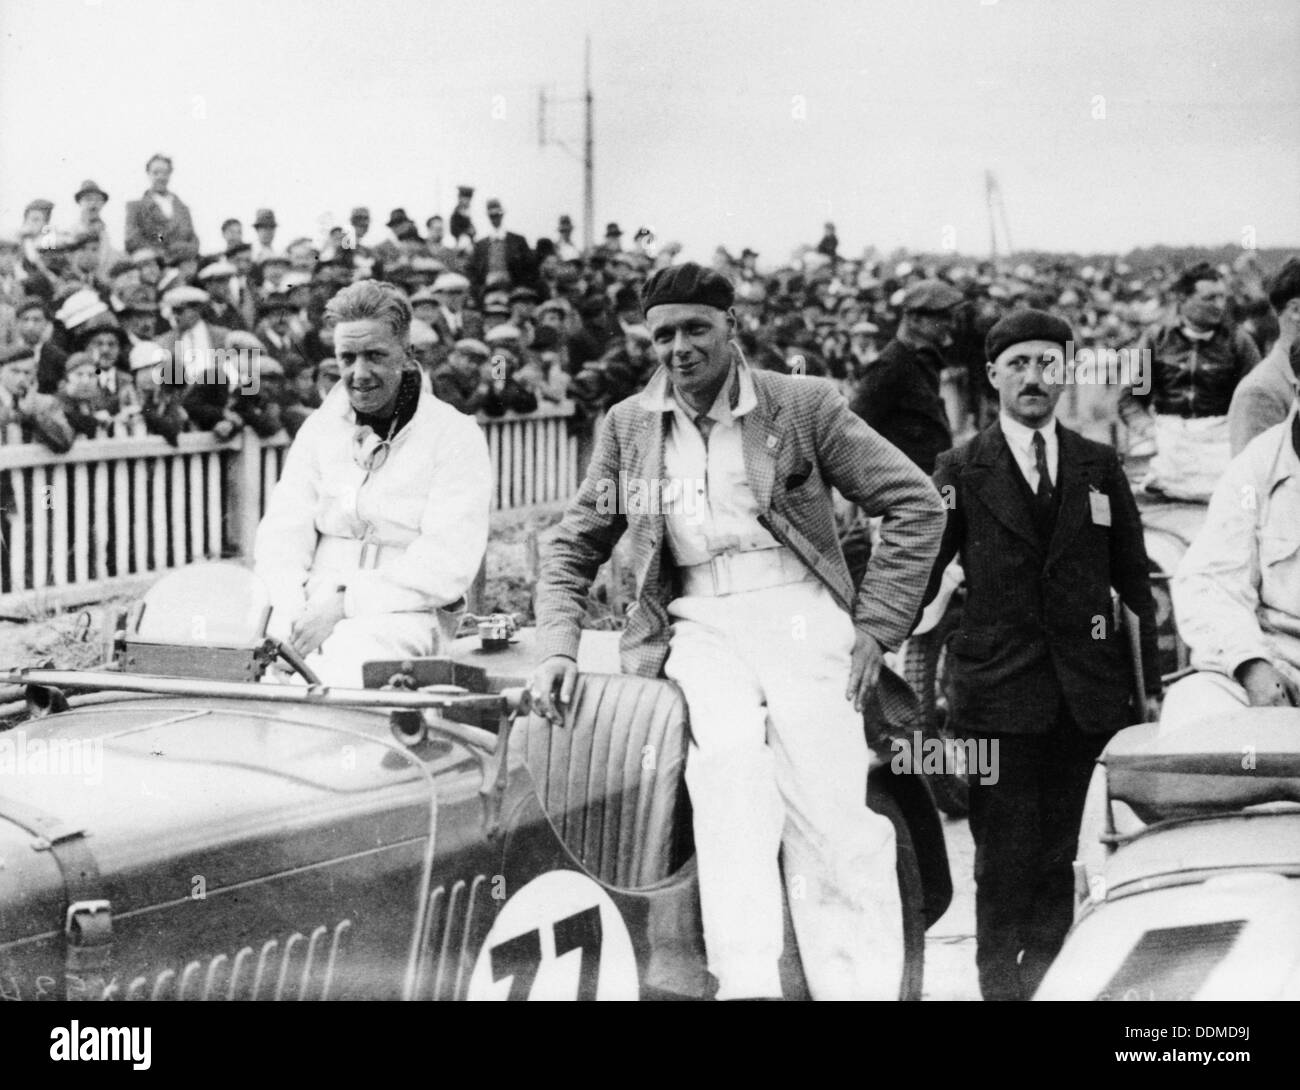 FS Barnes in the centre, AH Langley to his right, with a Singer Nine Sports car, 1930s. - Stock Image